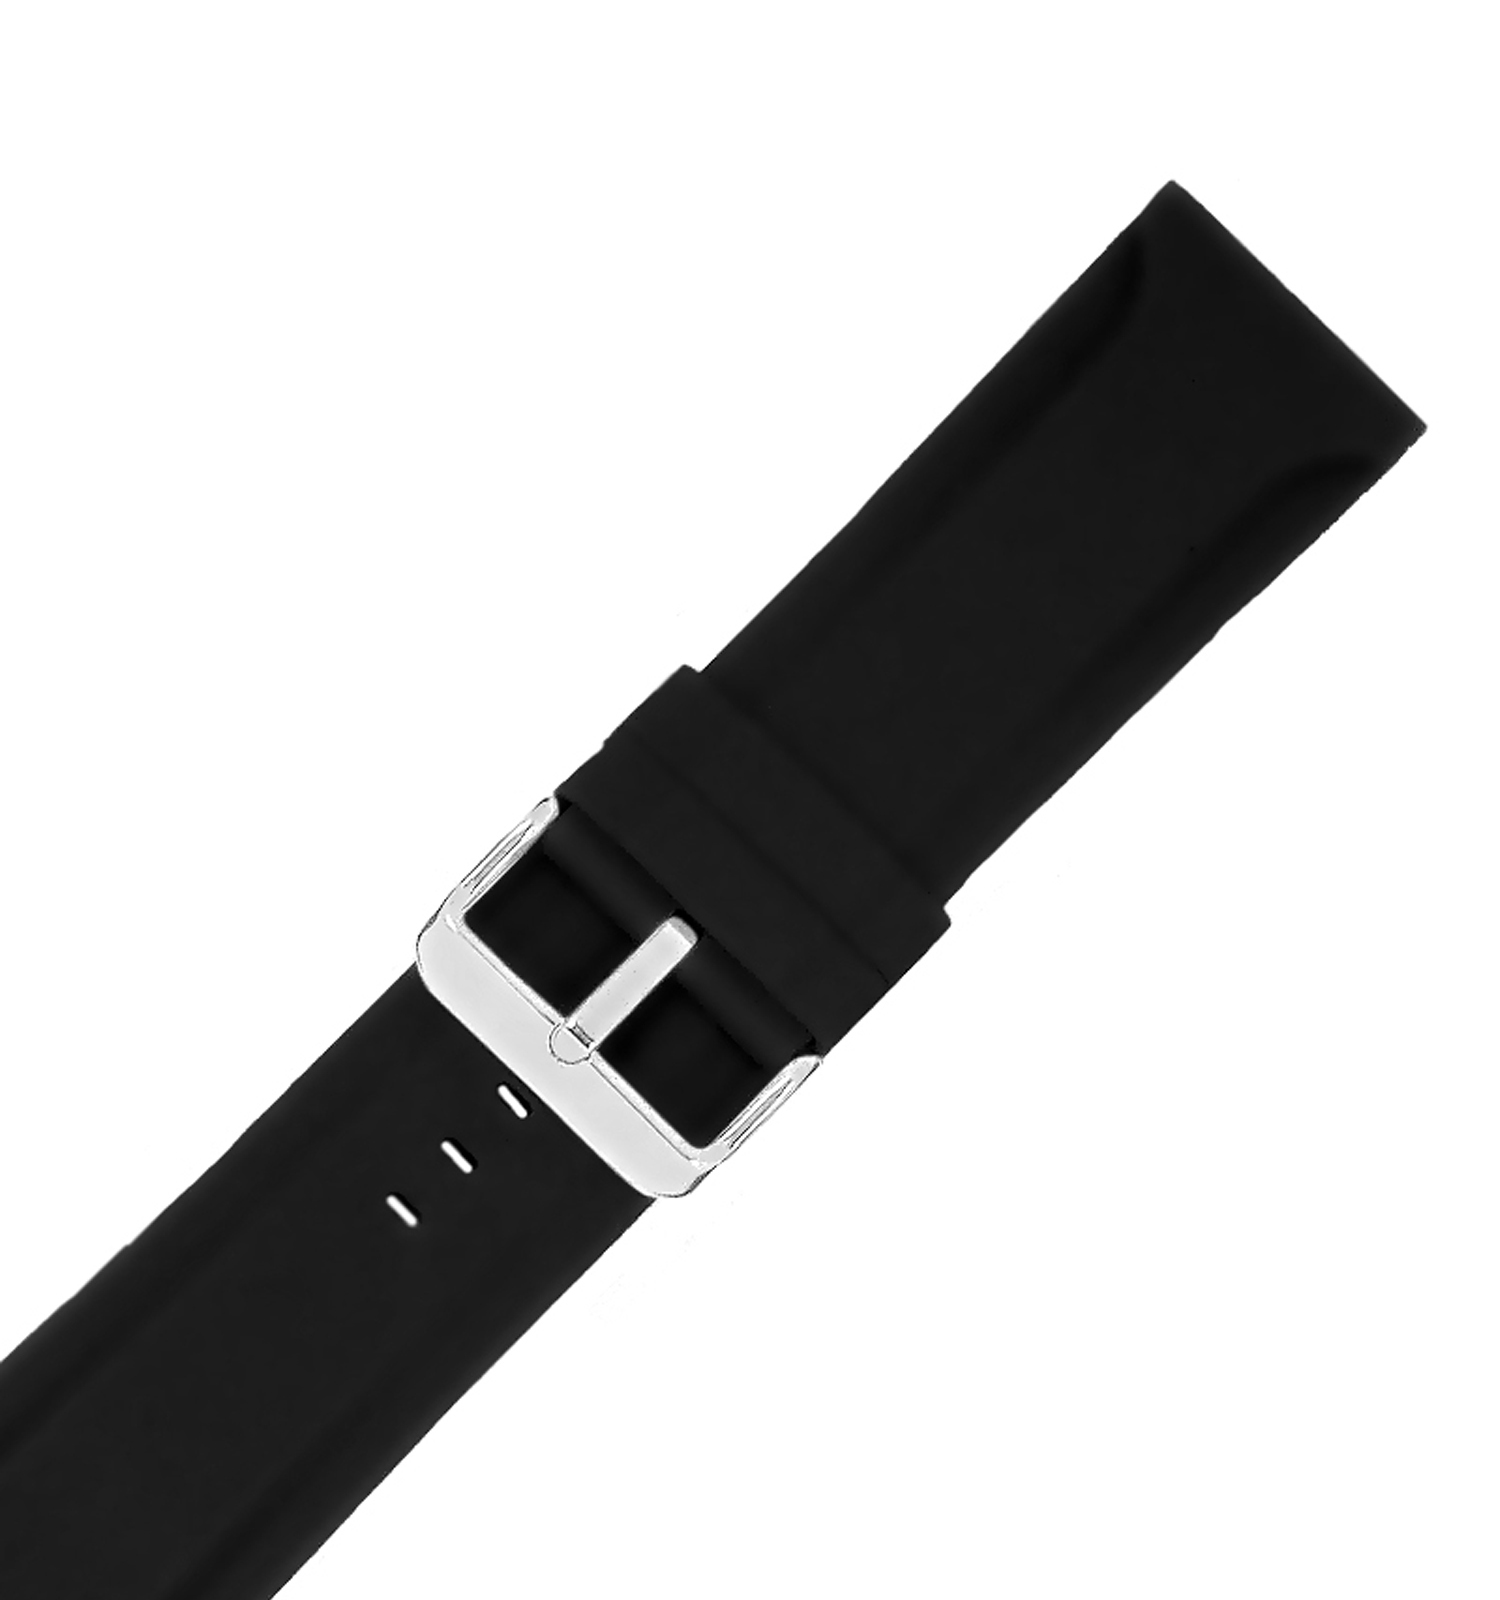 Hadley Roma MS3377 28mm Black Silicone Men's Diver Watch Band